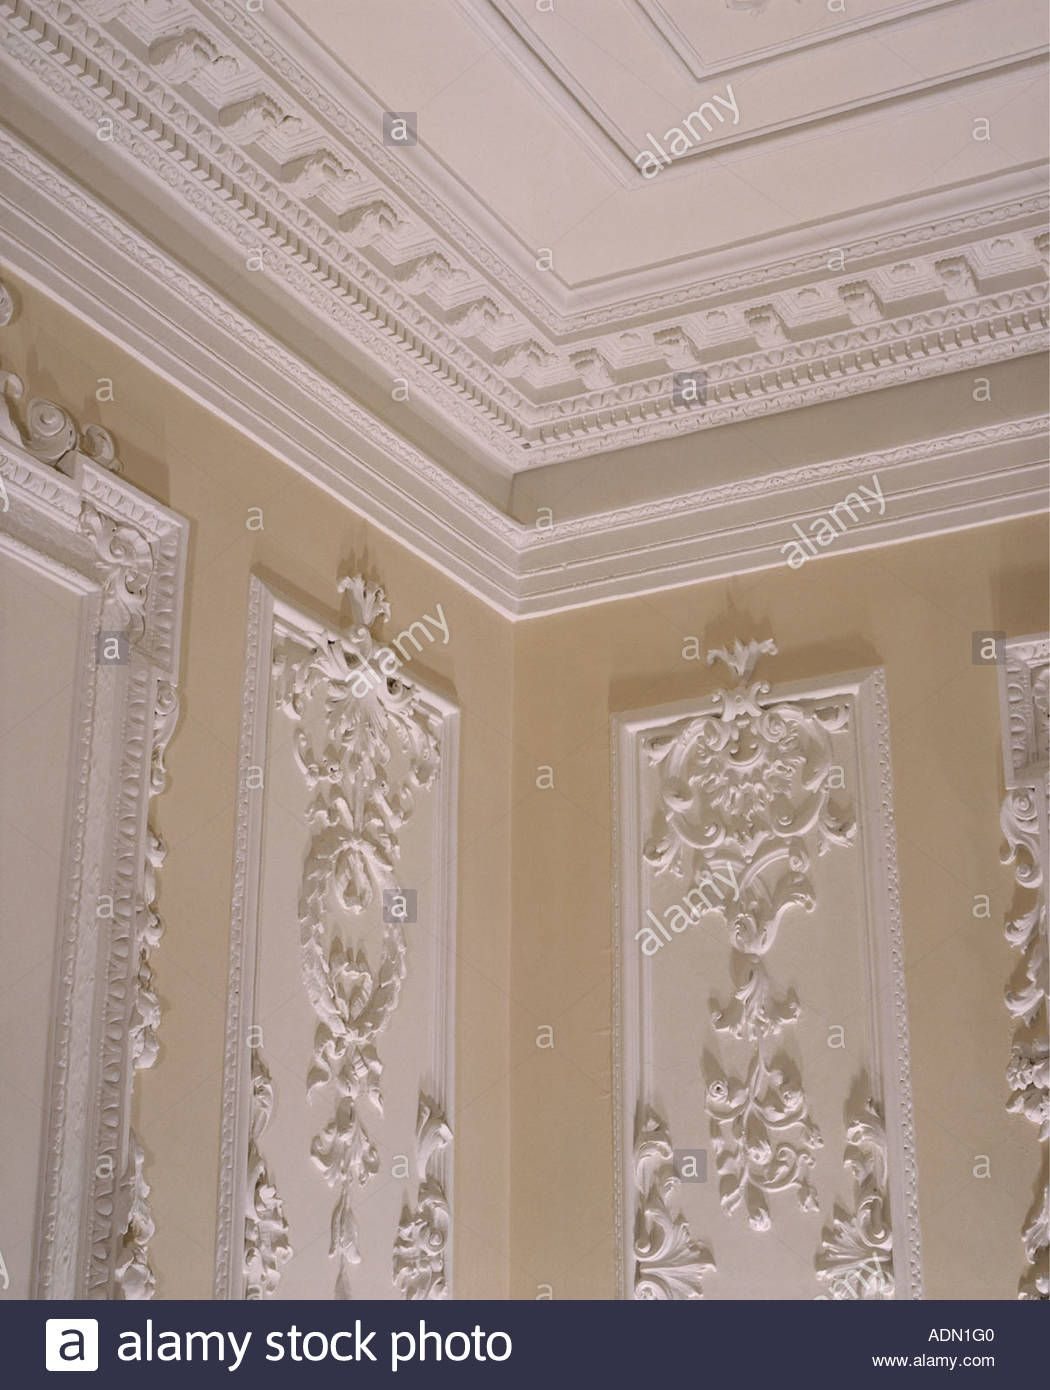 79fb35681 Close-up of plasterwork cornice and ceiling above walls with ornate  plasterwork panels Stock Photo